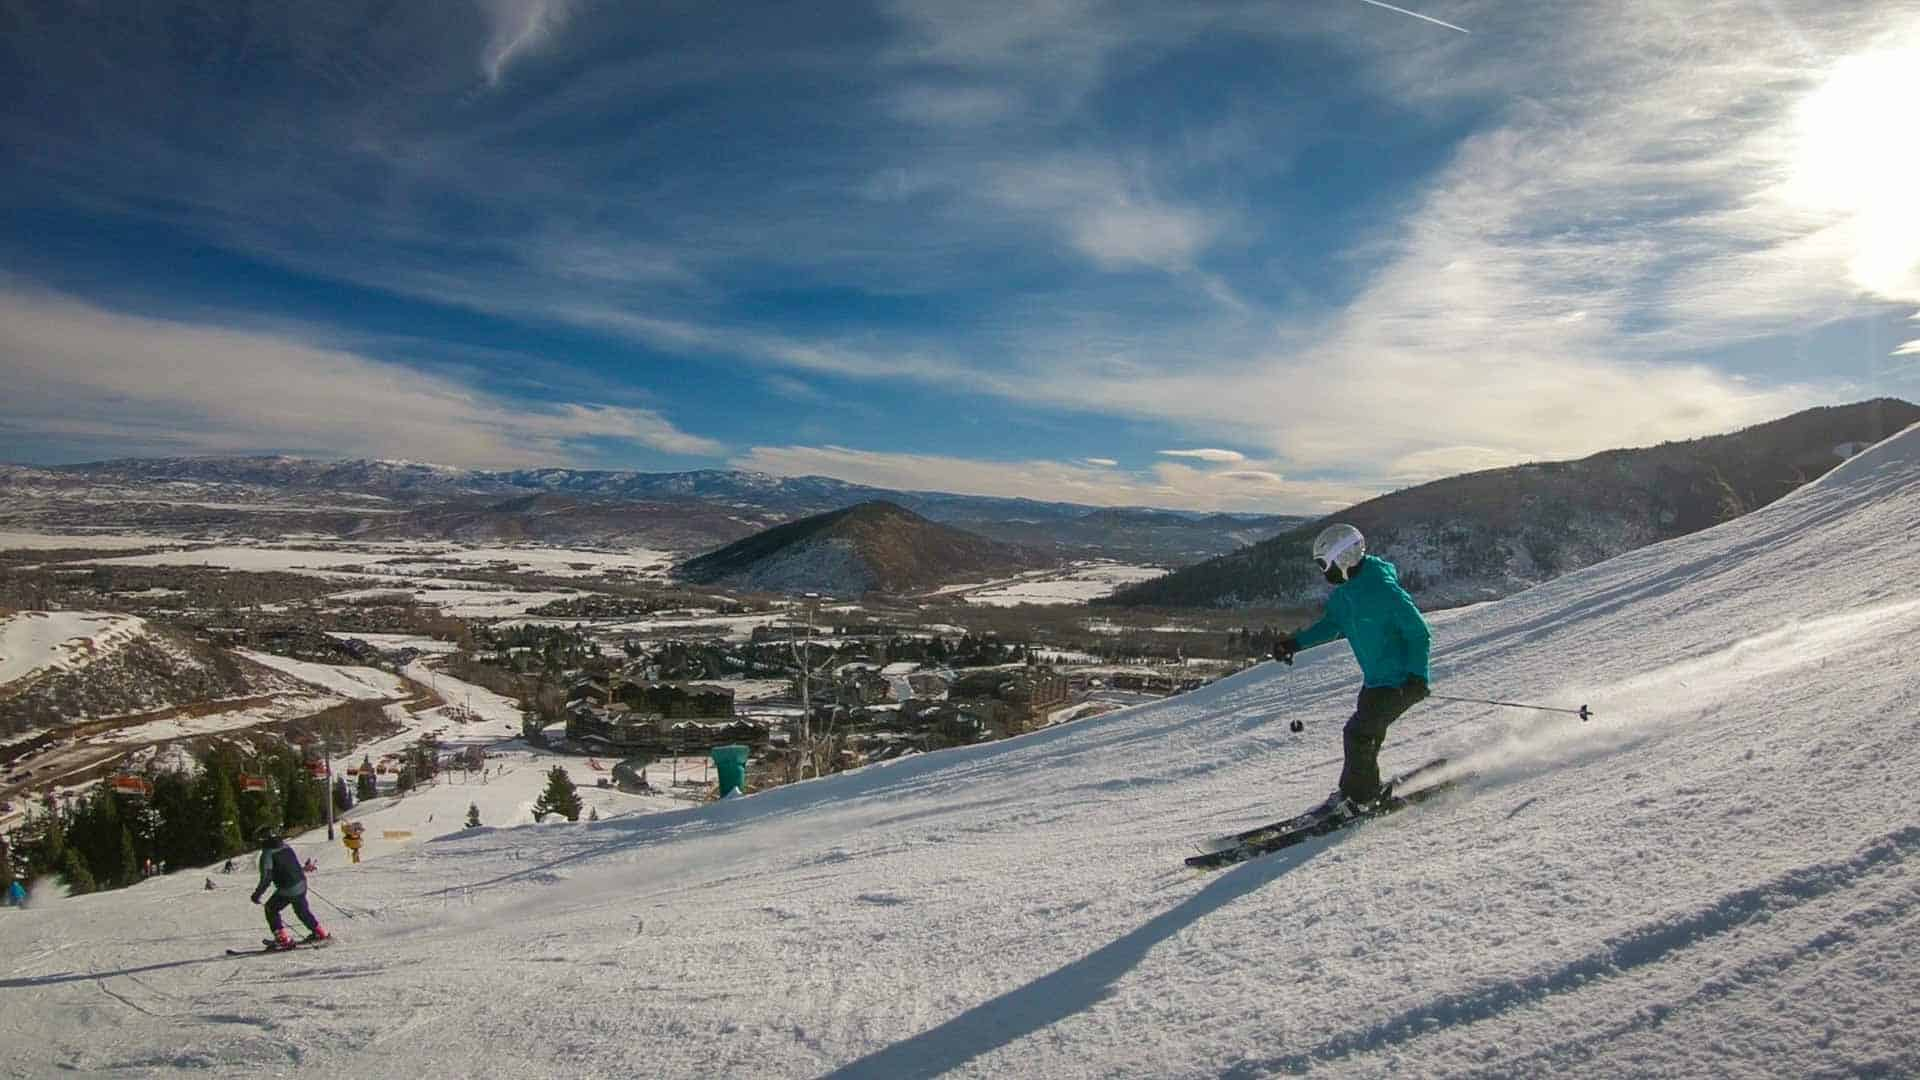 Skiing Park City Mountain Resort 4 - How to Make the Most of Your Park City Ski Trip